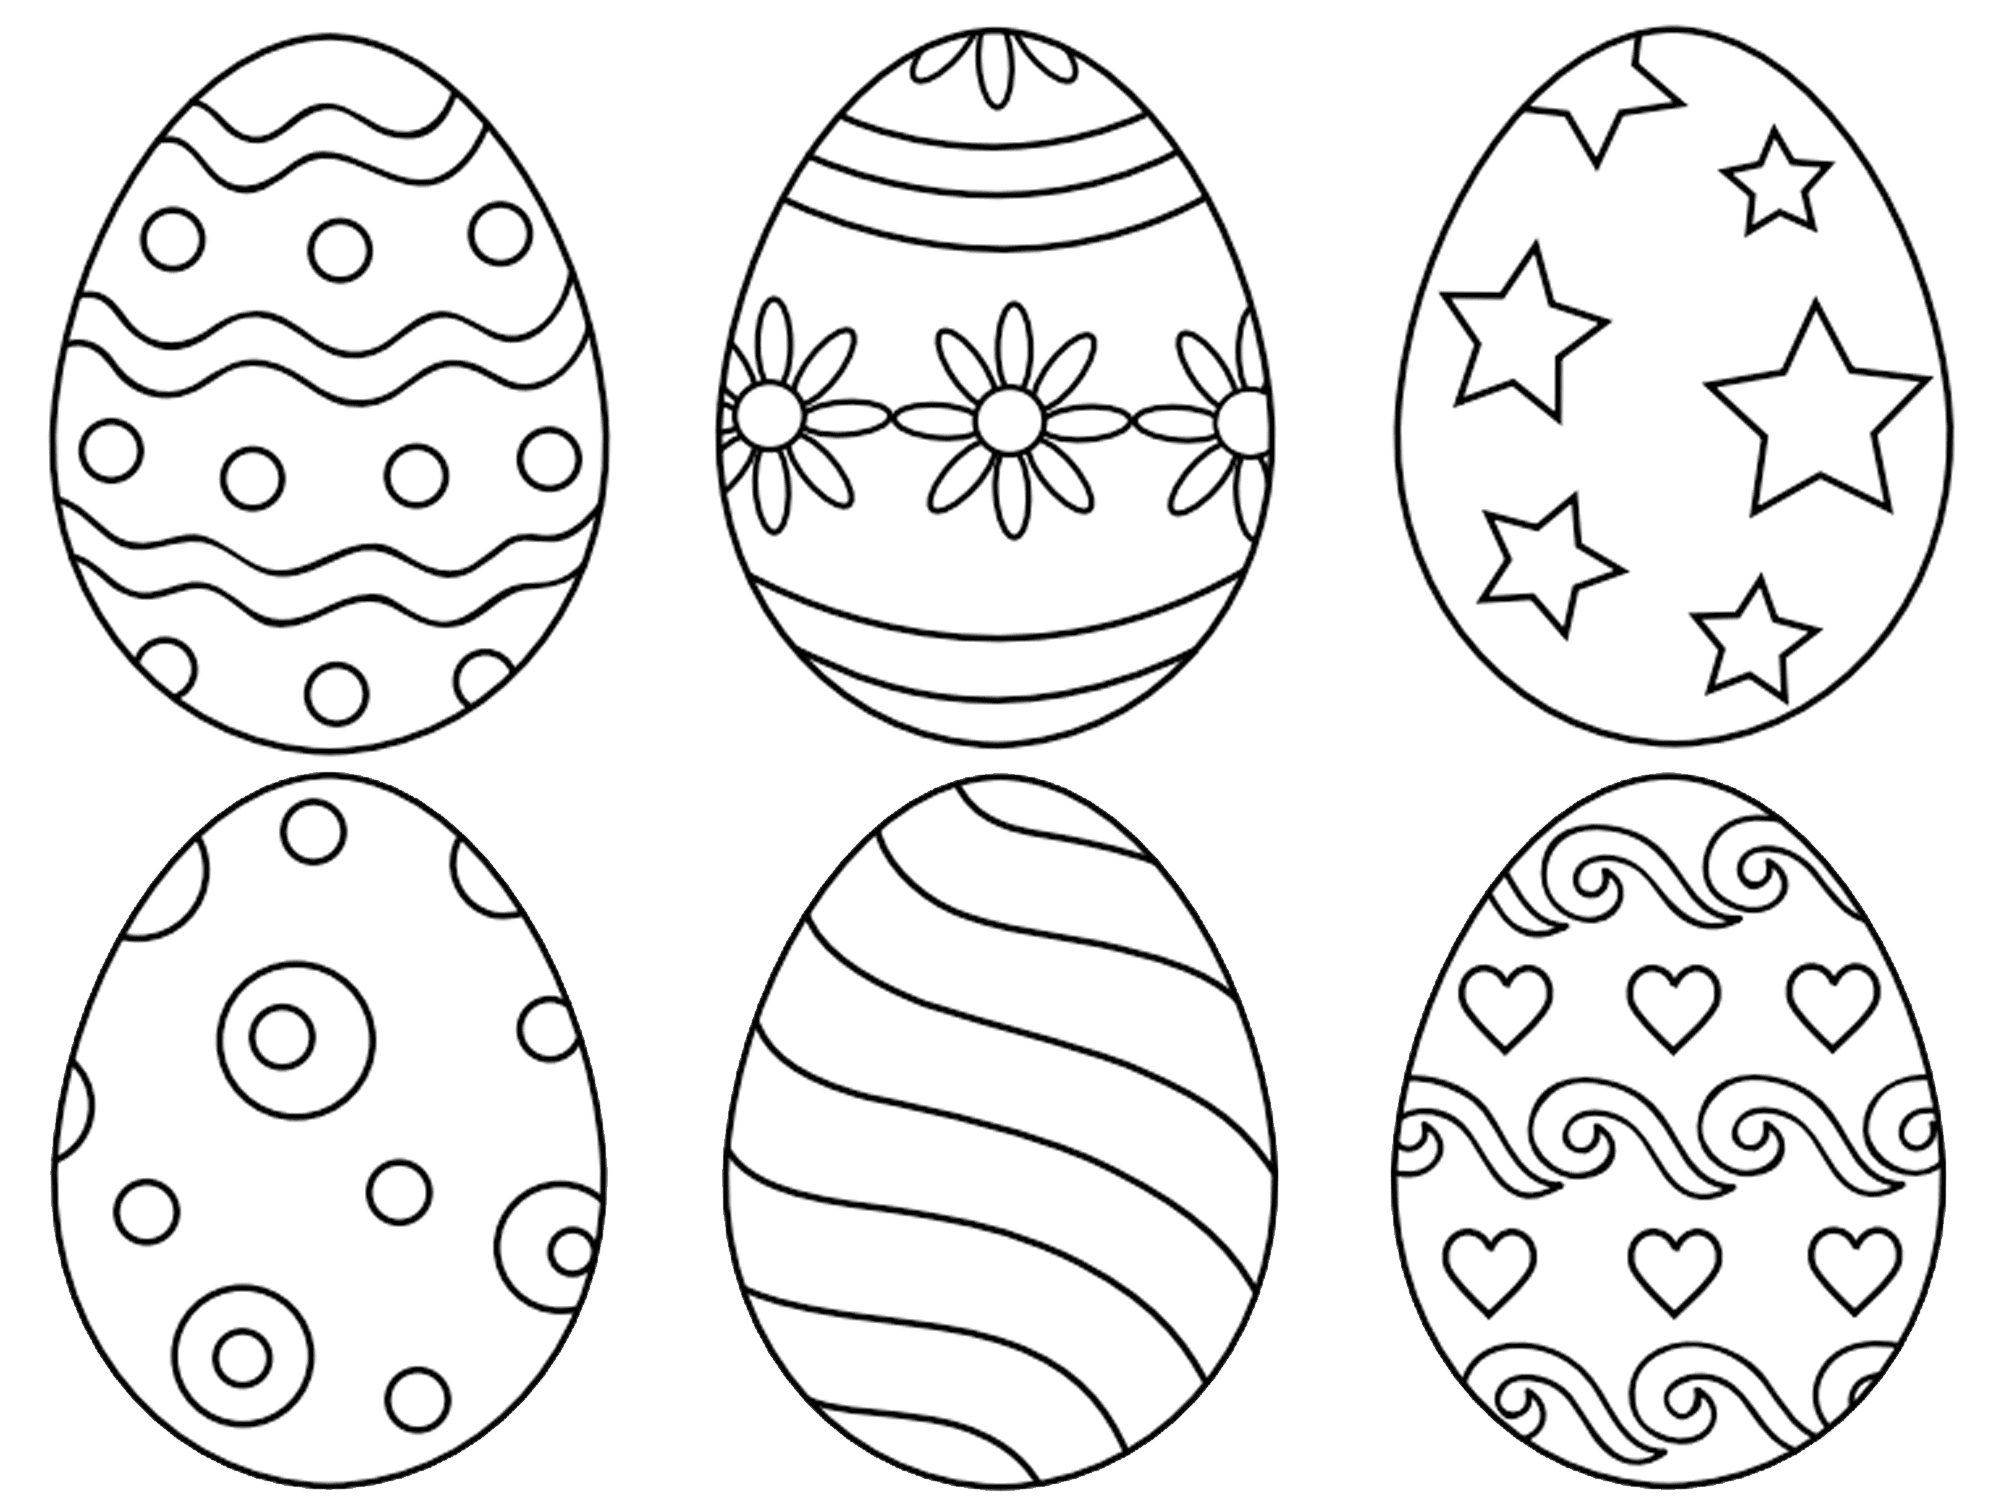 Coloring Pages Easter 217 Free Printable Easter Egg Coloring Pages